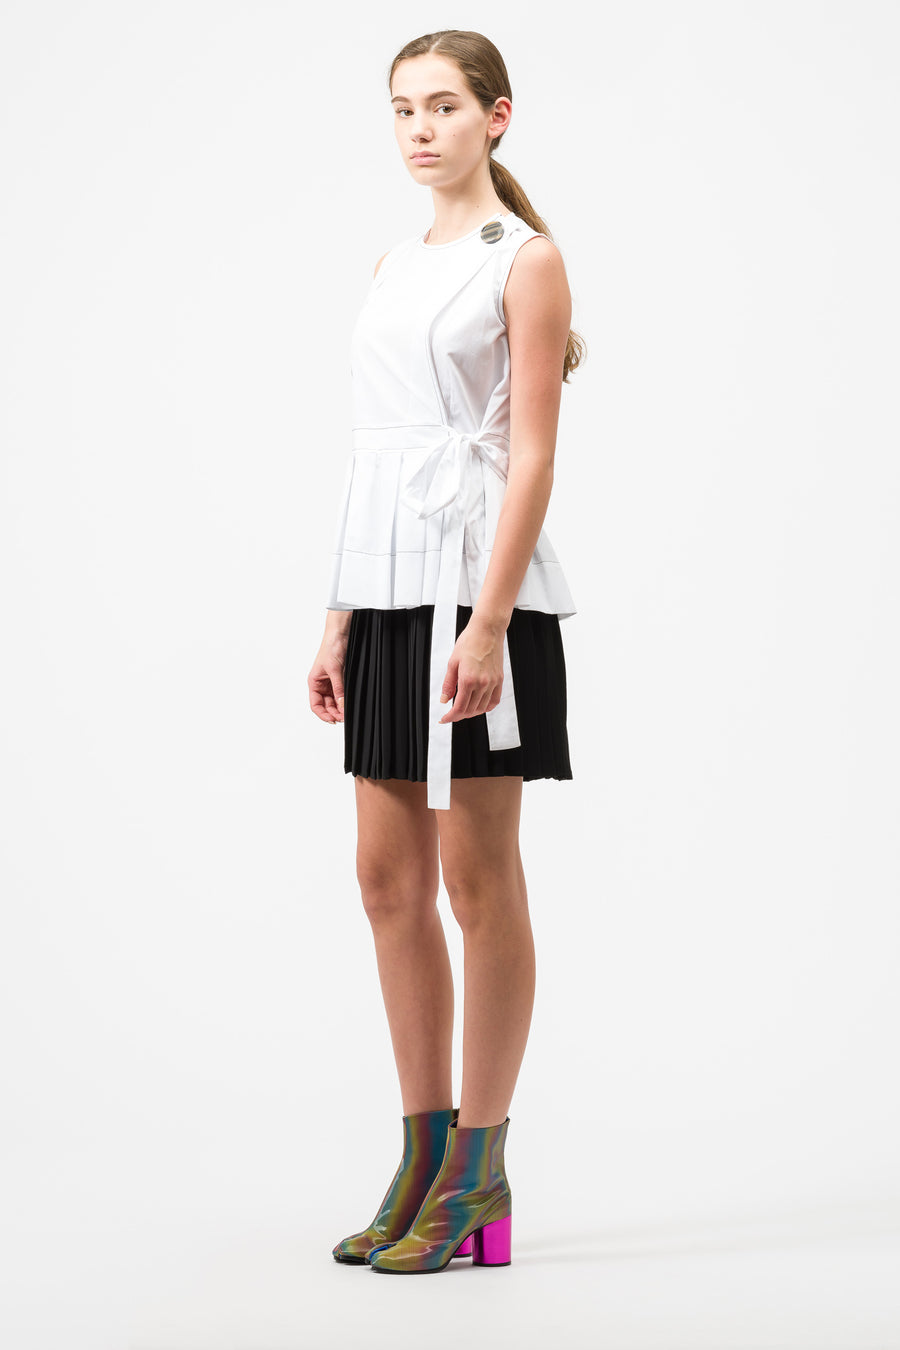 Marni Tank Top in Lily White - Notre